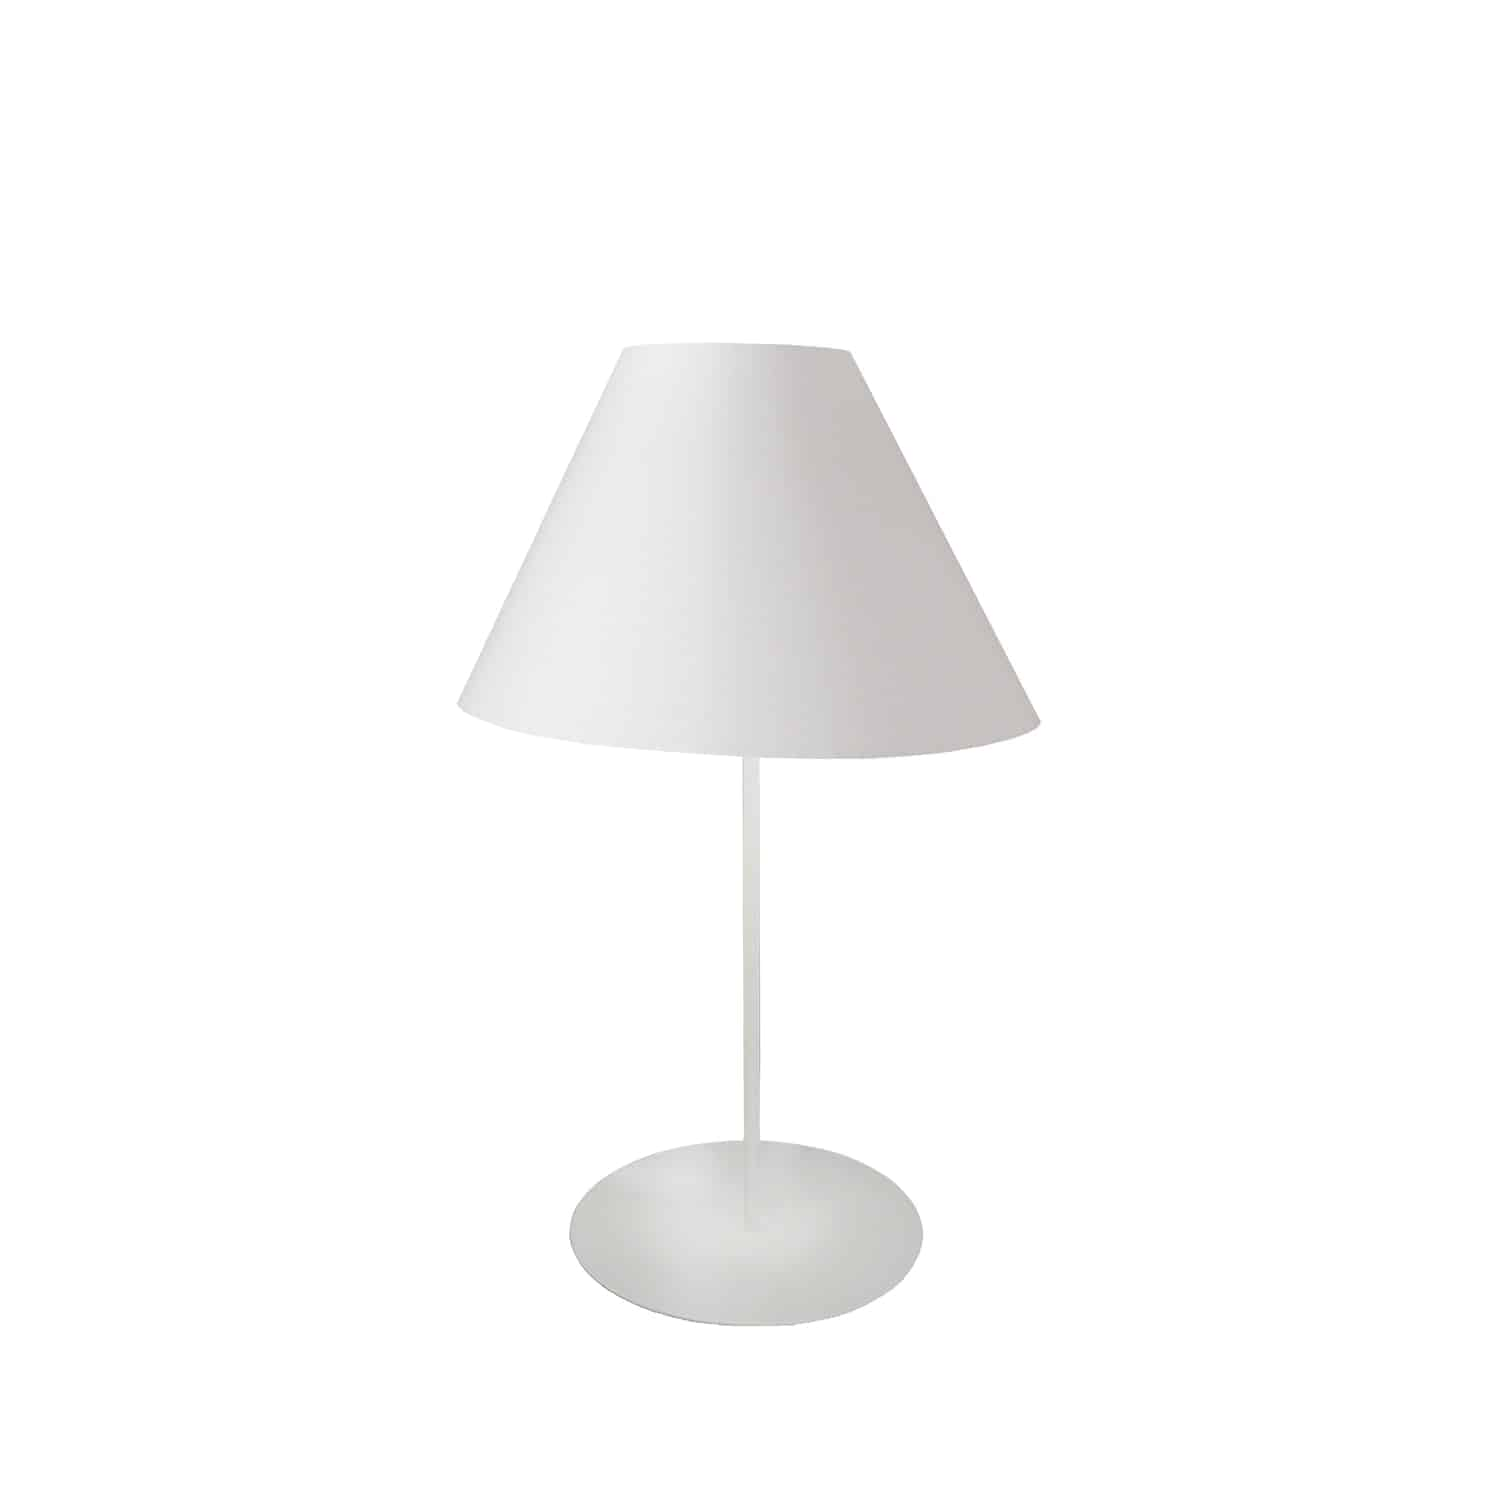 1 Light Tapered Table Lamp with White Shade